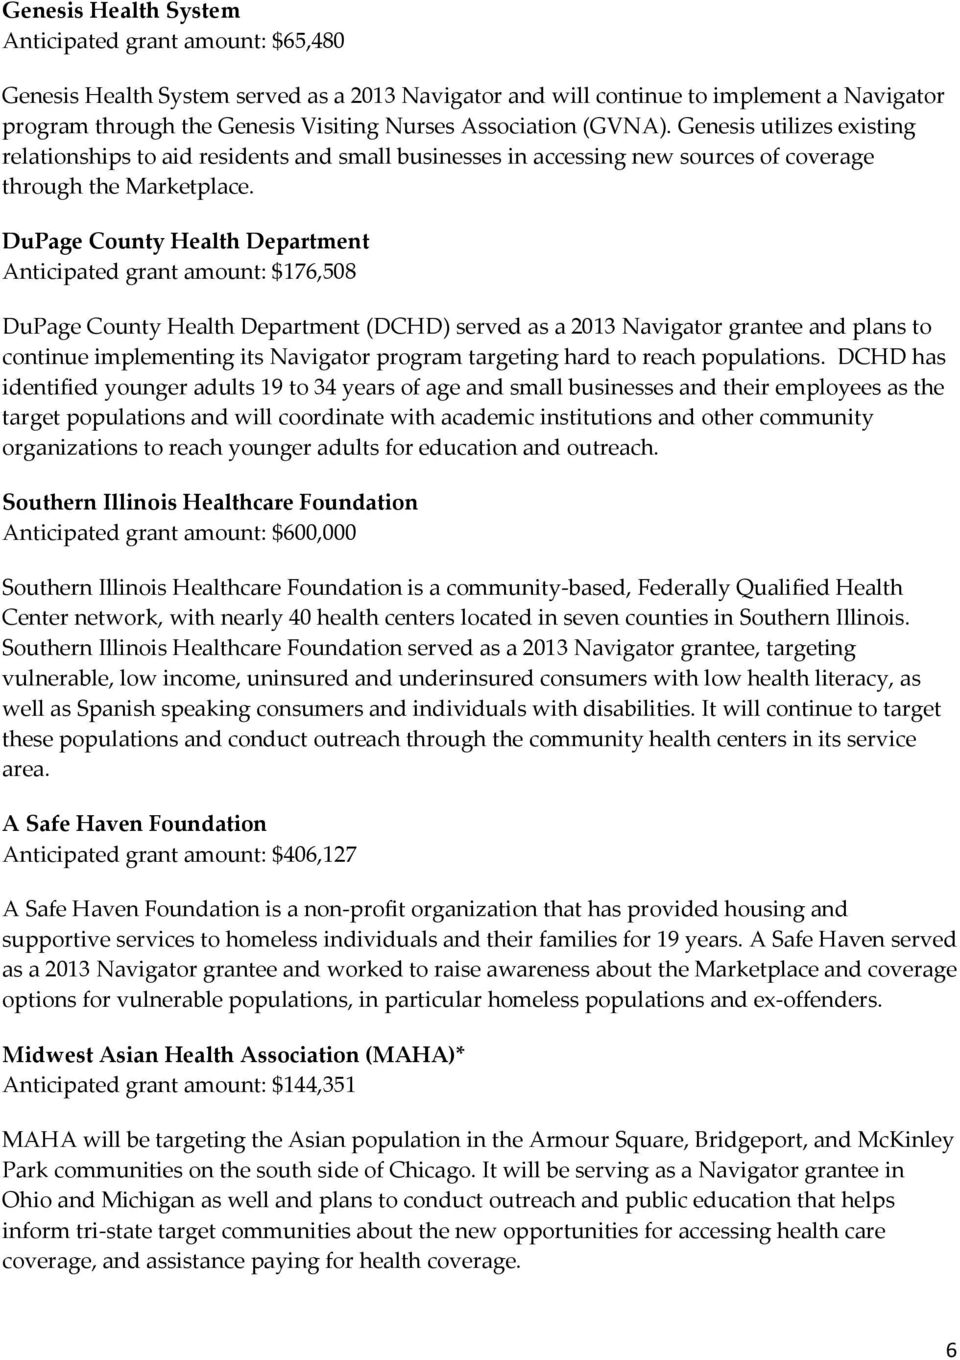 DuPage County Health Department Anticipated grant amount: $176,508 DuPage County Health Department (DCHD) served as a 2013 Navigator grantee and plans to continue implementing its Navigator program